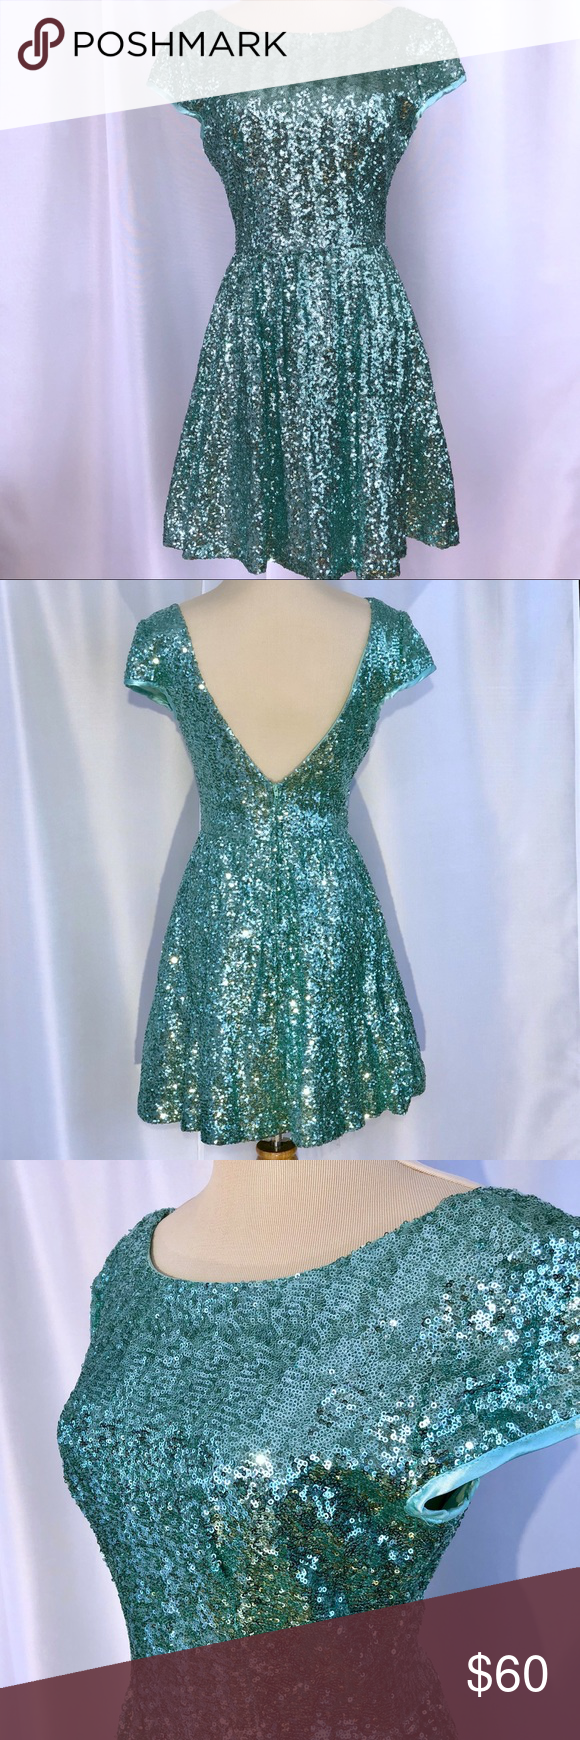 eb88a9ef6765 Mint Green Sequin Formal Prom Homecoming Dress Like New Windsor Dress  Boutique Mint Green Sequin Dress Perfect for Formal, Prom, or Homecoming  Size 5/6 see ...